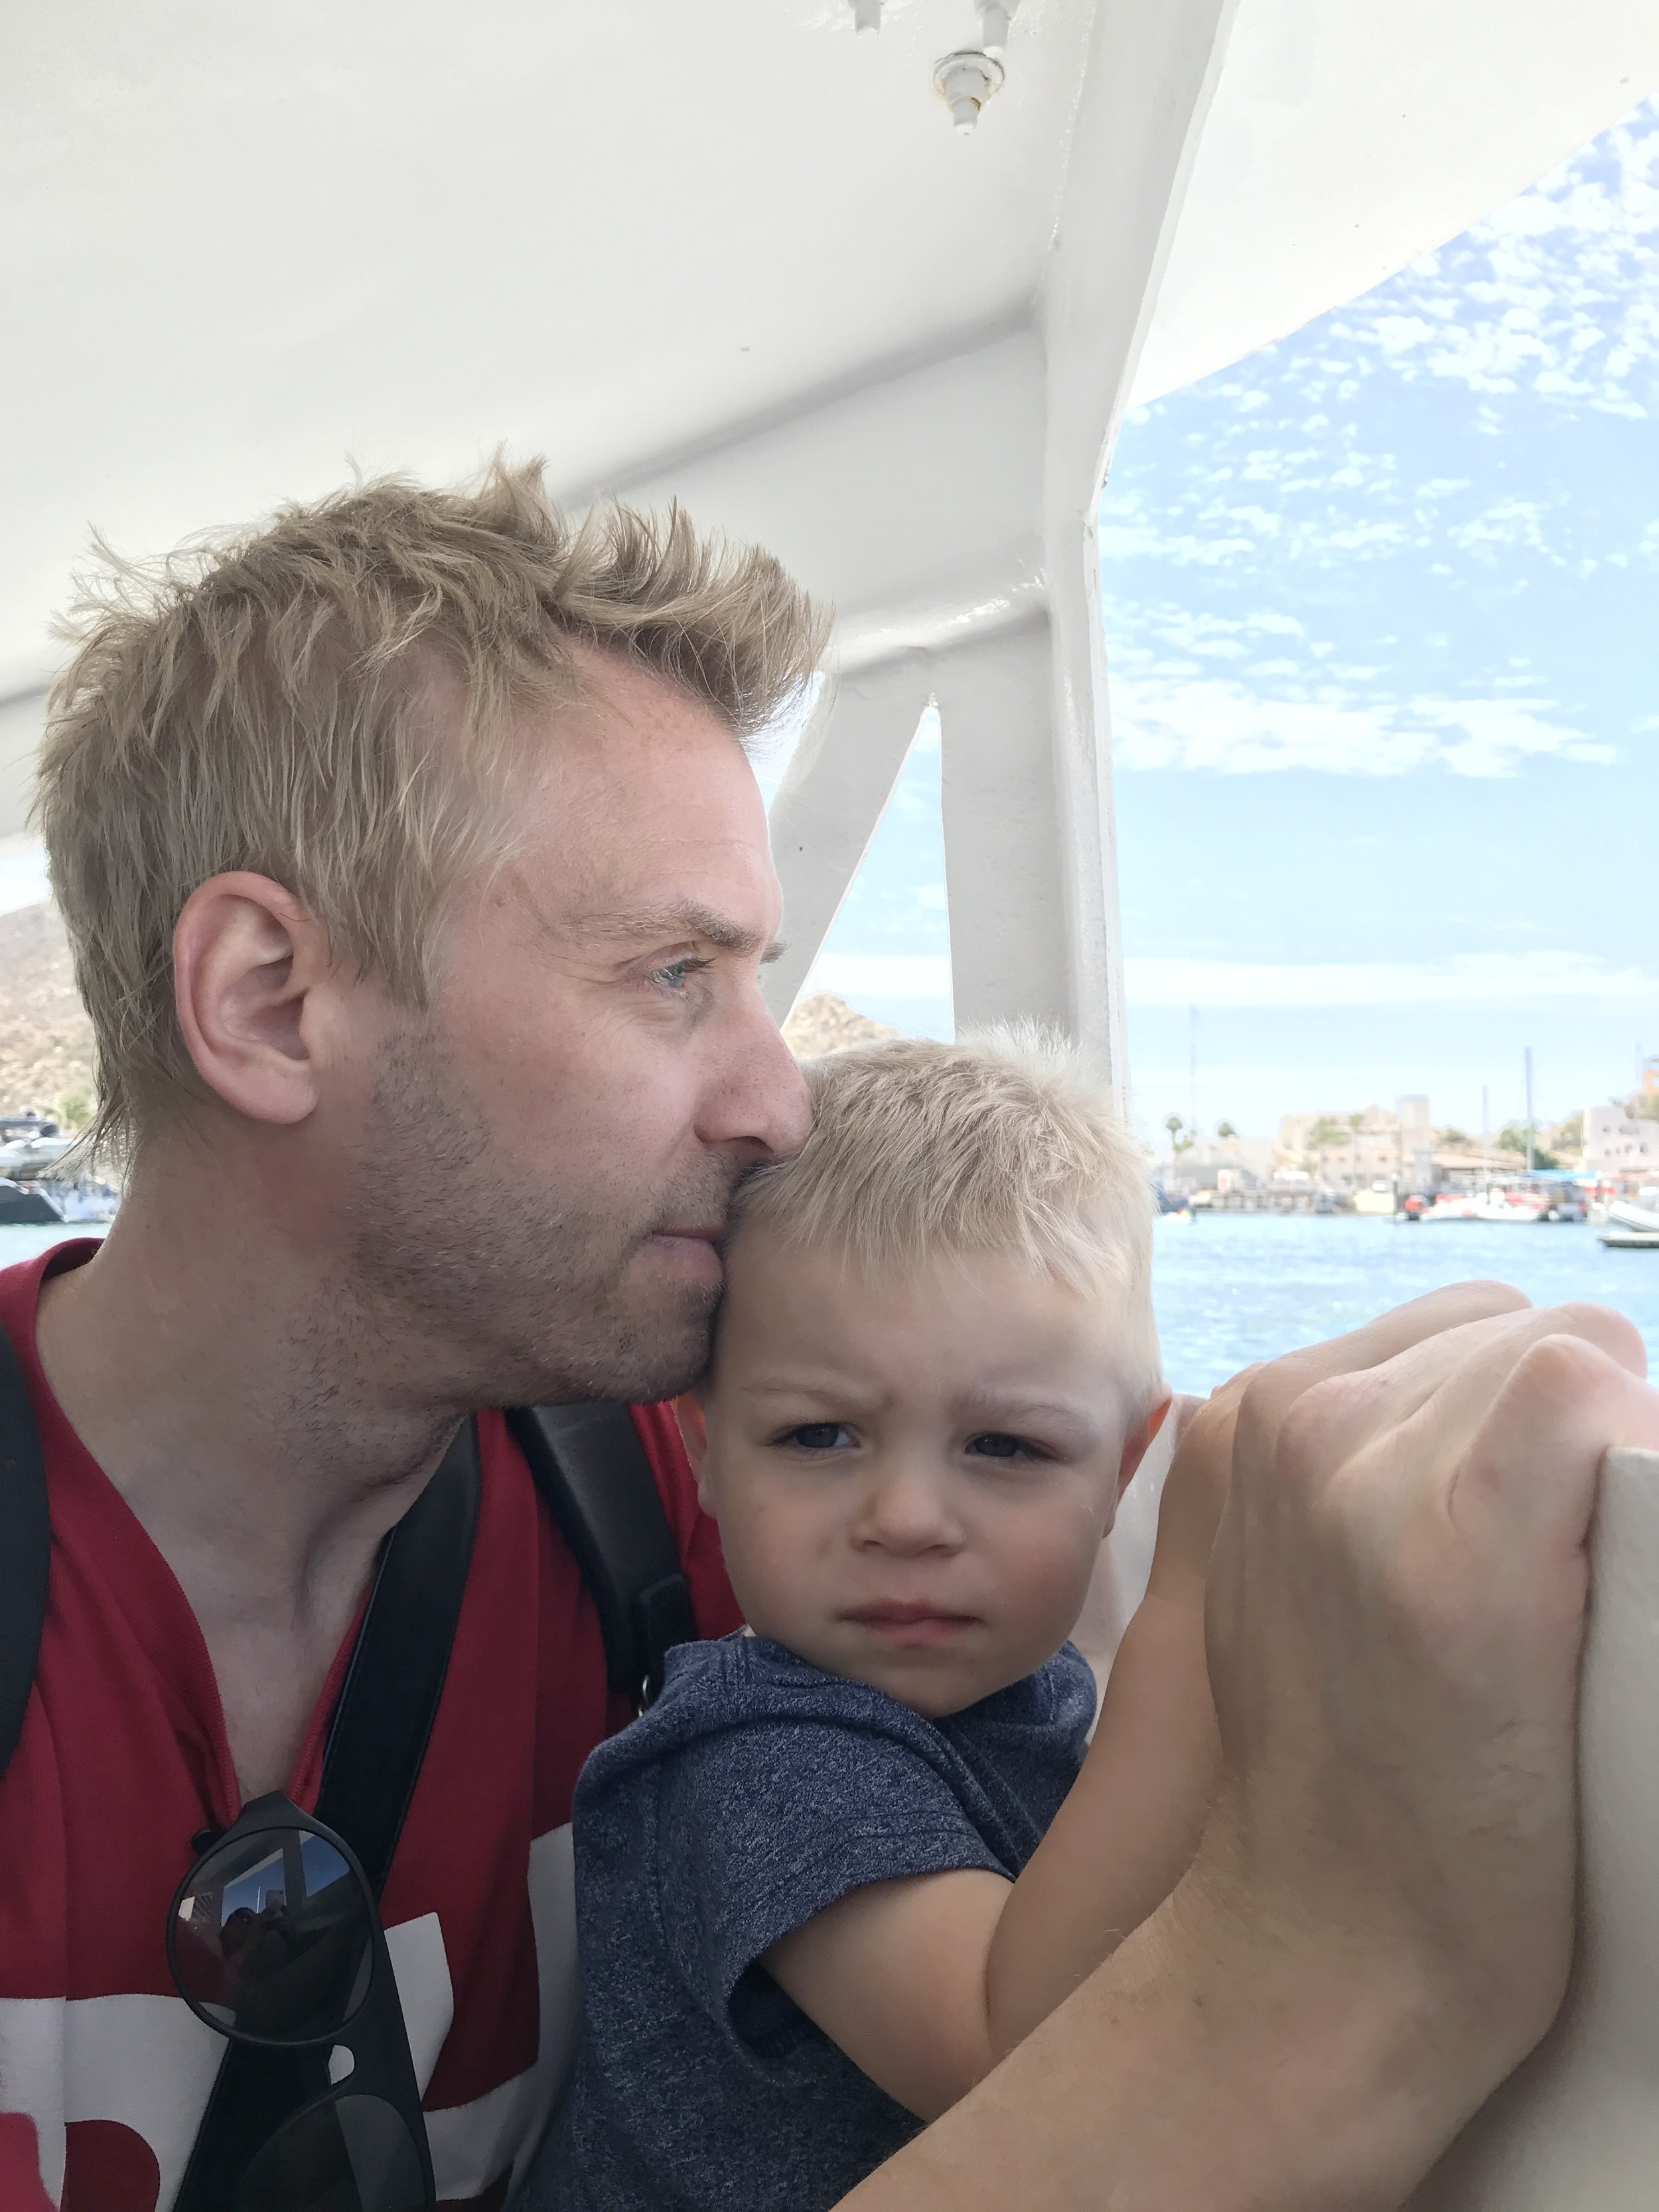 Our tired little one with  daddy  wanting anxiously to get back to our boat so he can take a nap!